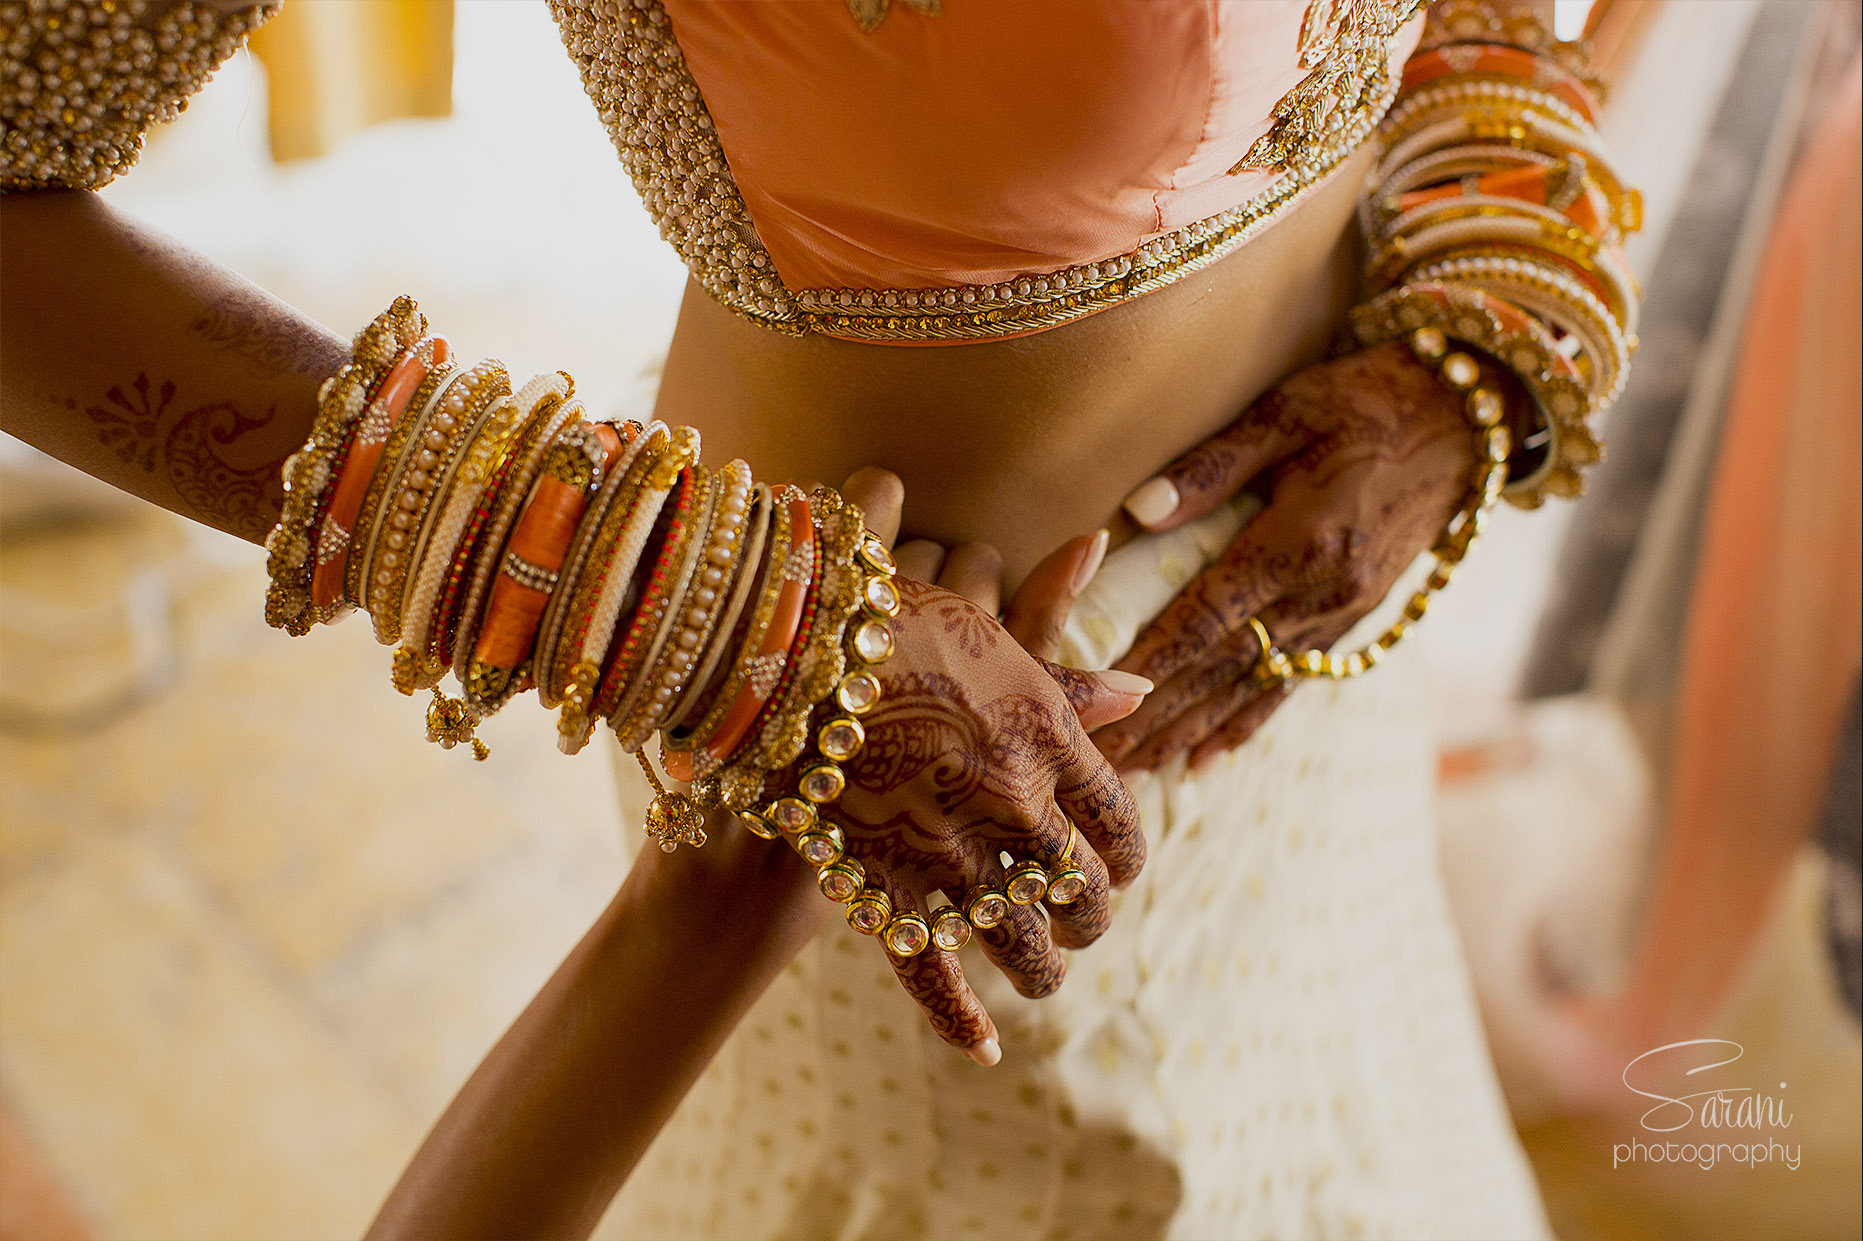 Indian Wedding Photography at Dreams Riviera Cancun